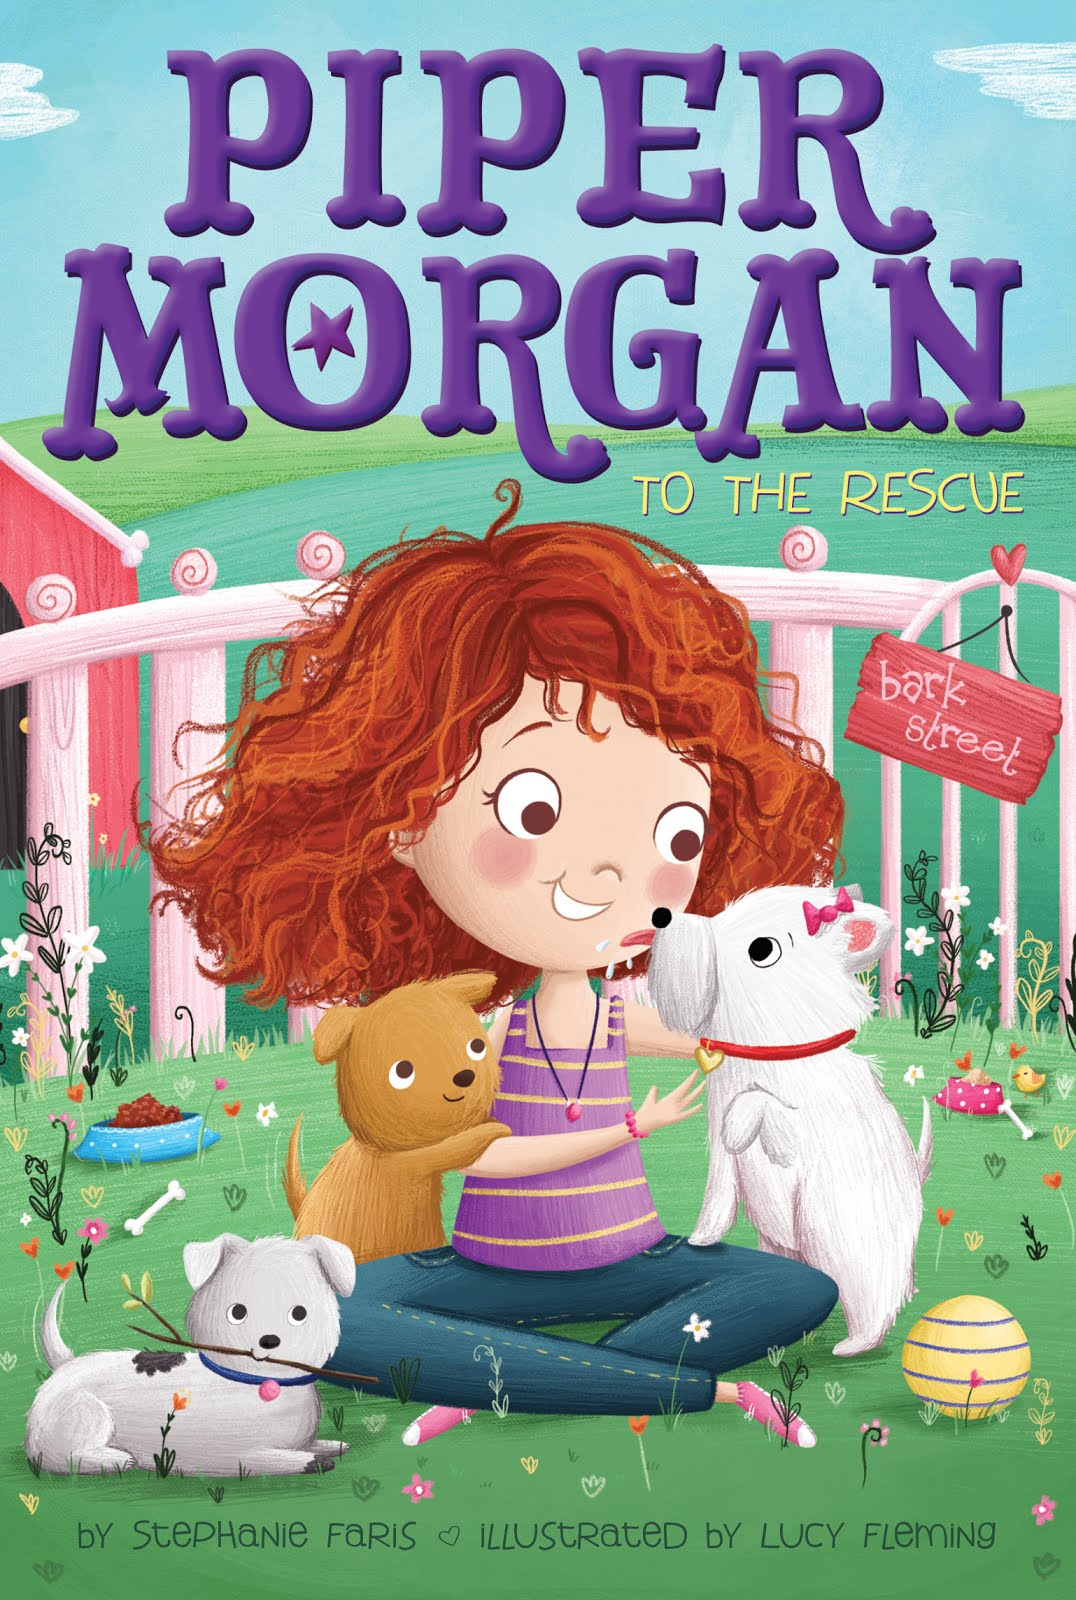 Piper Morgan to the Rescue (Book 3 of 5)